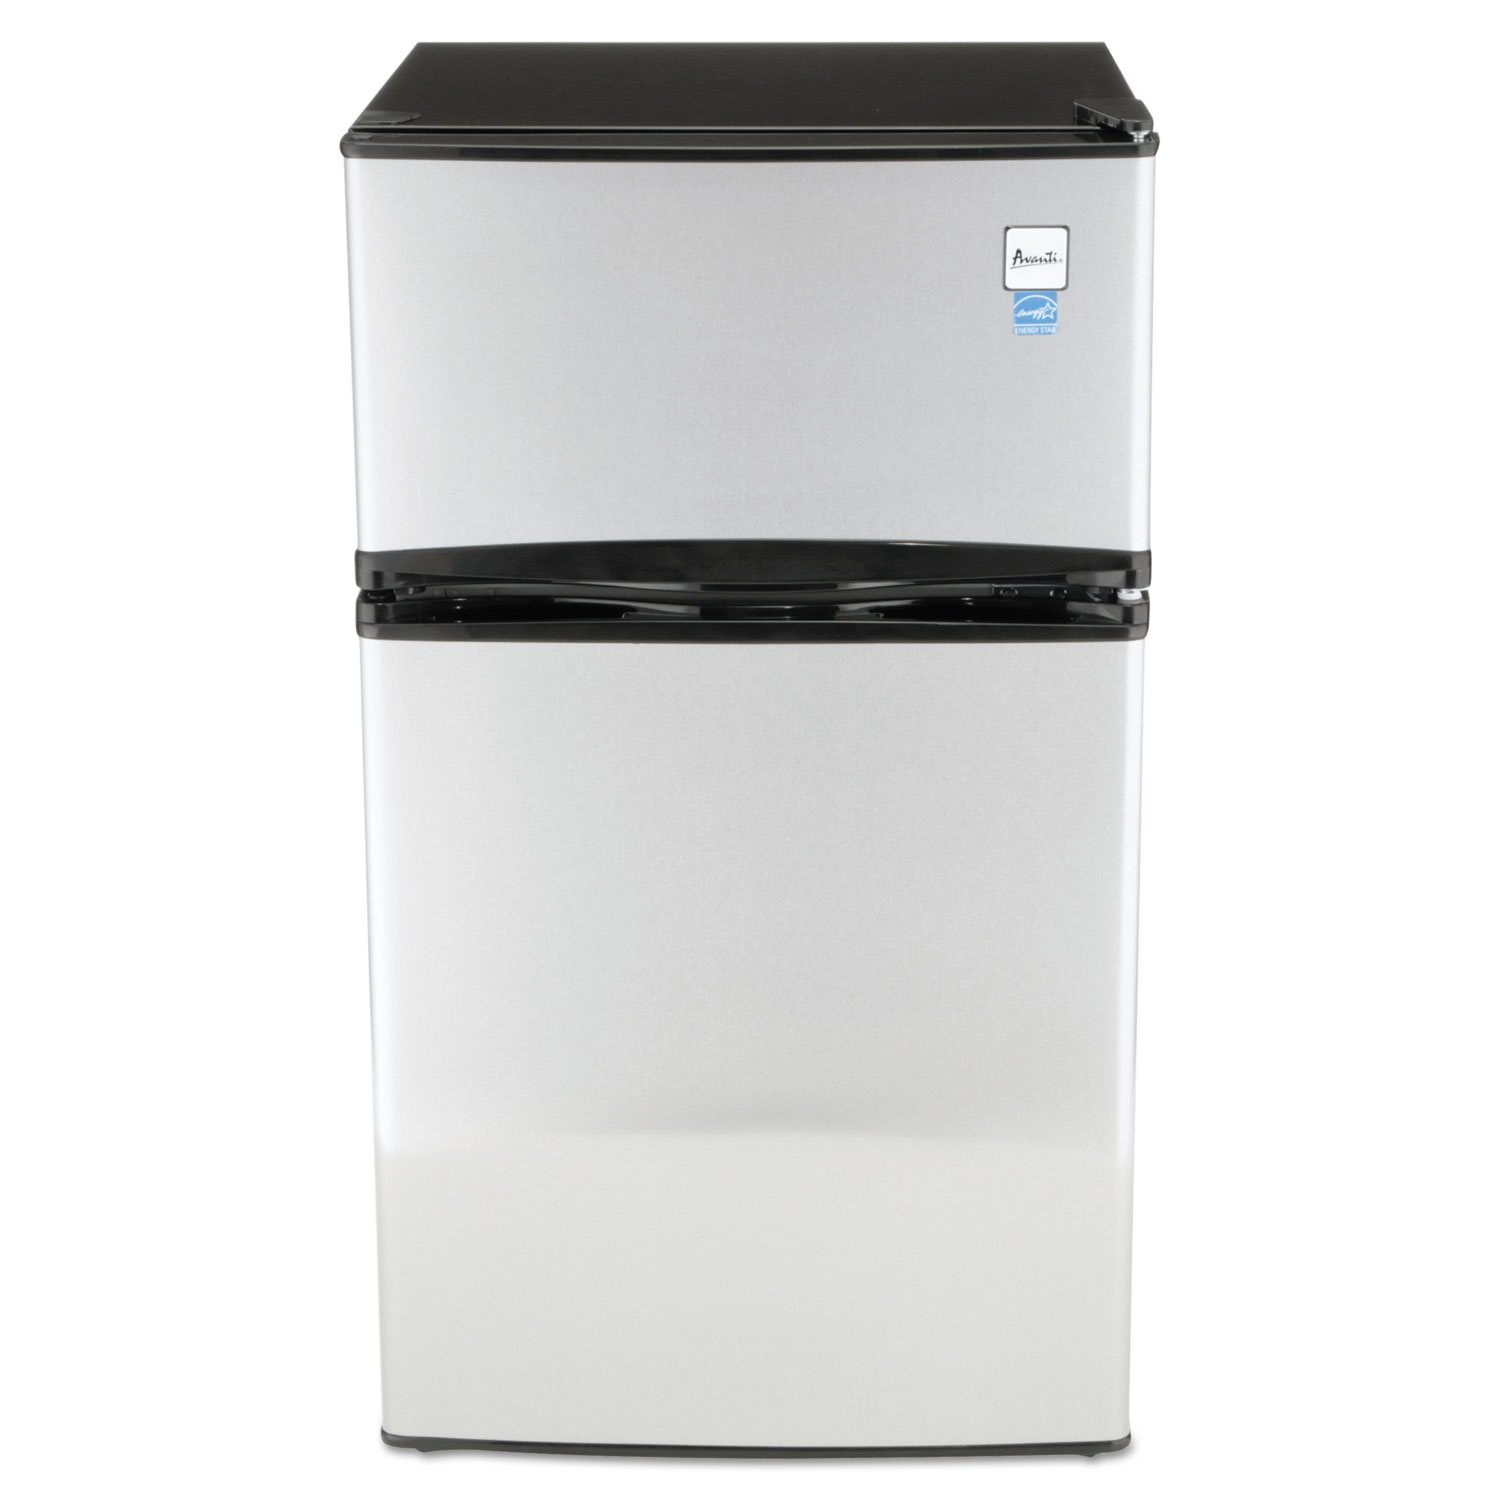 Counter Height Refrigerator And Freezer : Counter-Height 3.1 Cu. Ft Two-Door Refrigerator/Freezer by Avanti ...